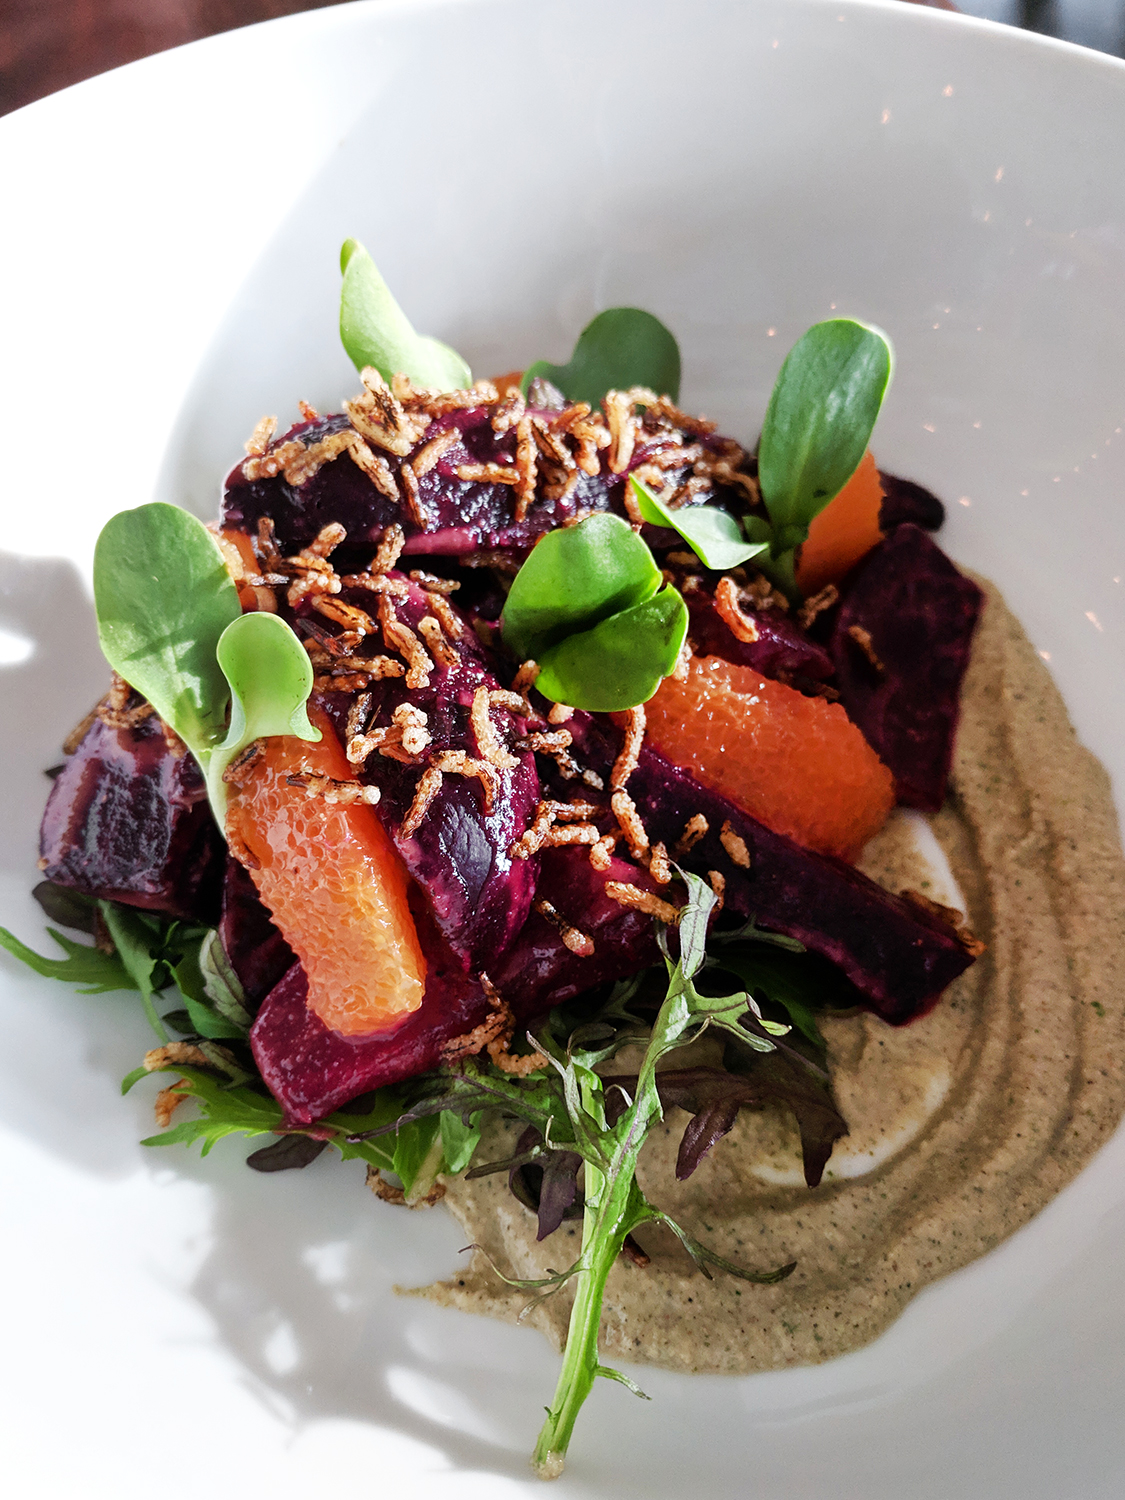 10portland-coopershall-winery-taproom-travel-food-beets